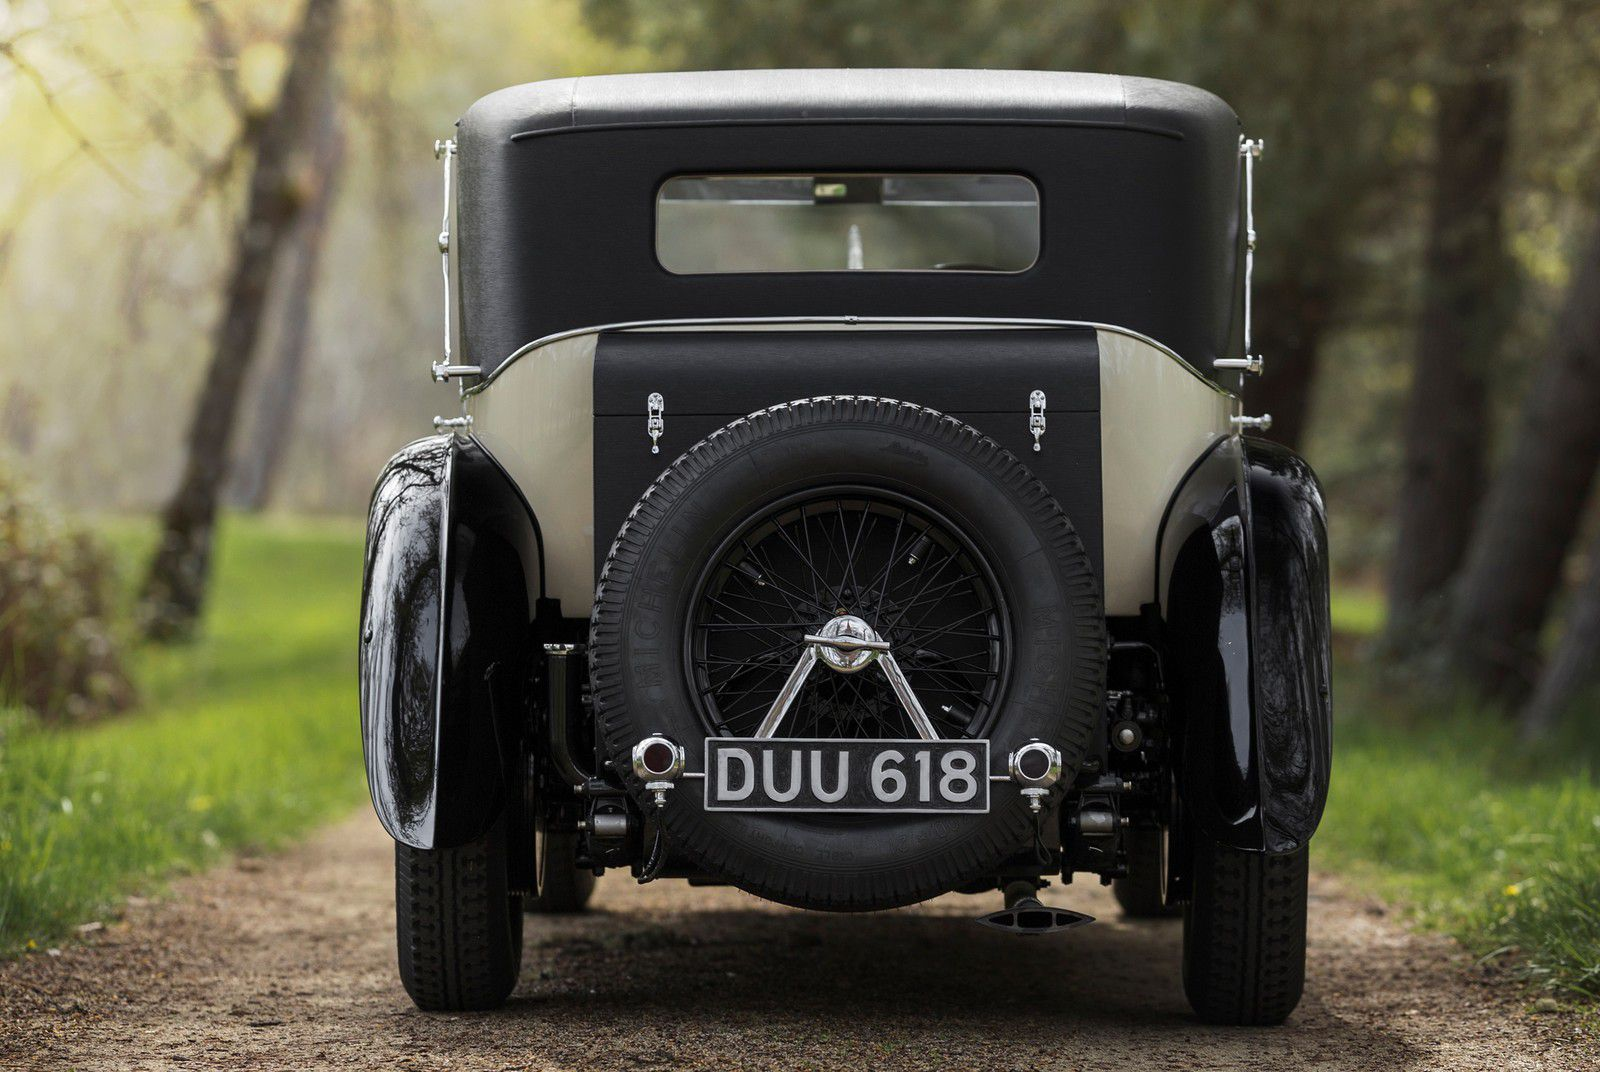 VOITURES DE LEGENDE (1223) : BENTLEY  6 ½  LITRE SPORTSMAN'S SALOON By MULLINER - 1930